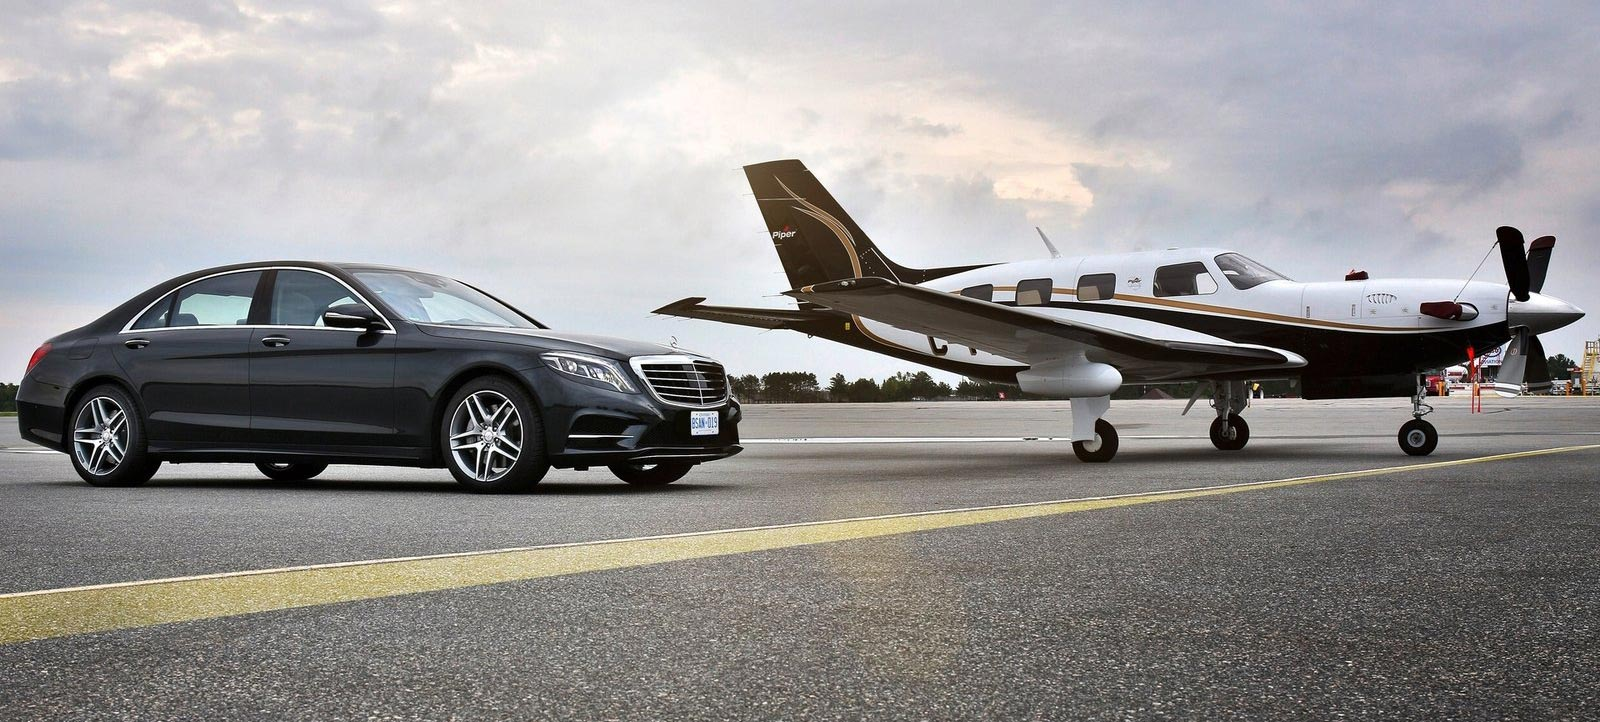 Your Car rental with driver at your airport Tarmac